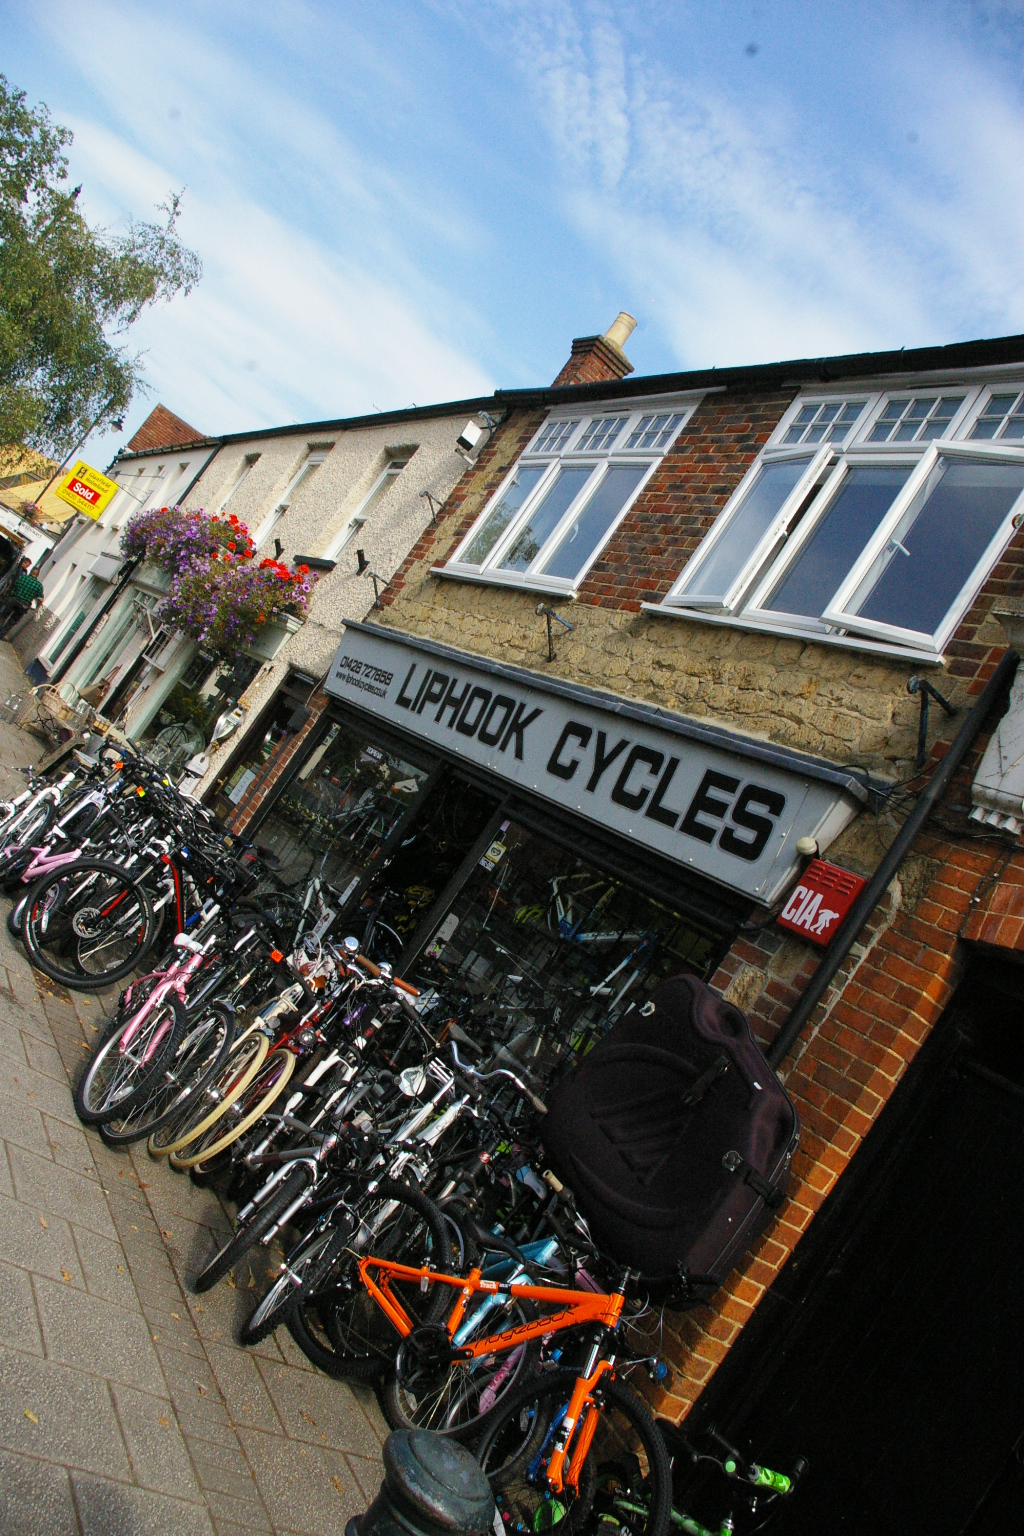 Liphook Cycles shop